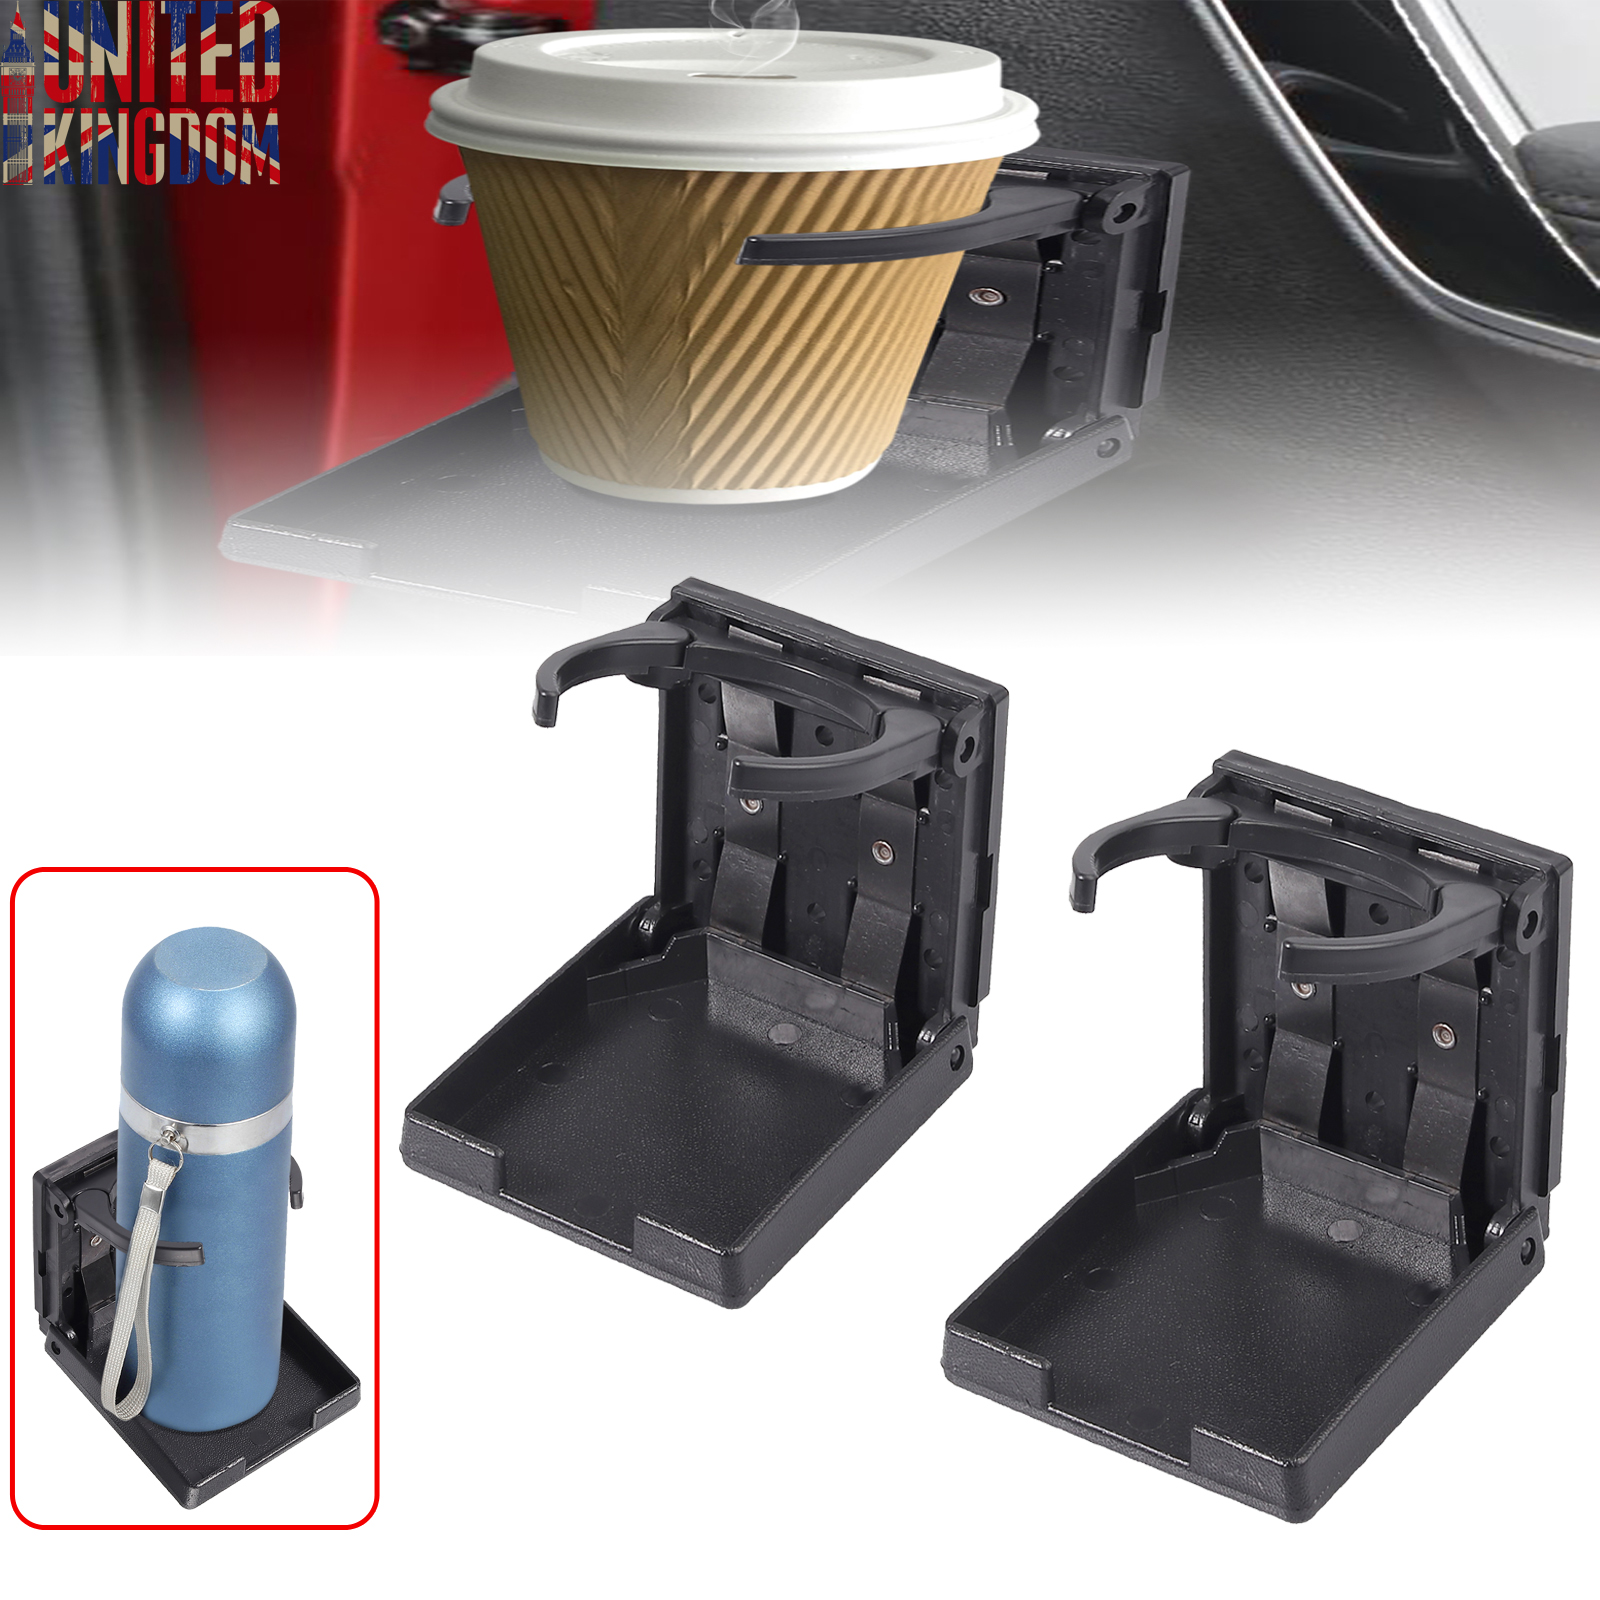 2pcs Adjustable Folding Cup Drink Holder with Screws and Tapes Black Adjustable Automotive Cup Holders for Car TRUCK BOAT VAN.